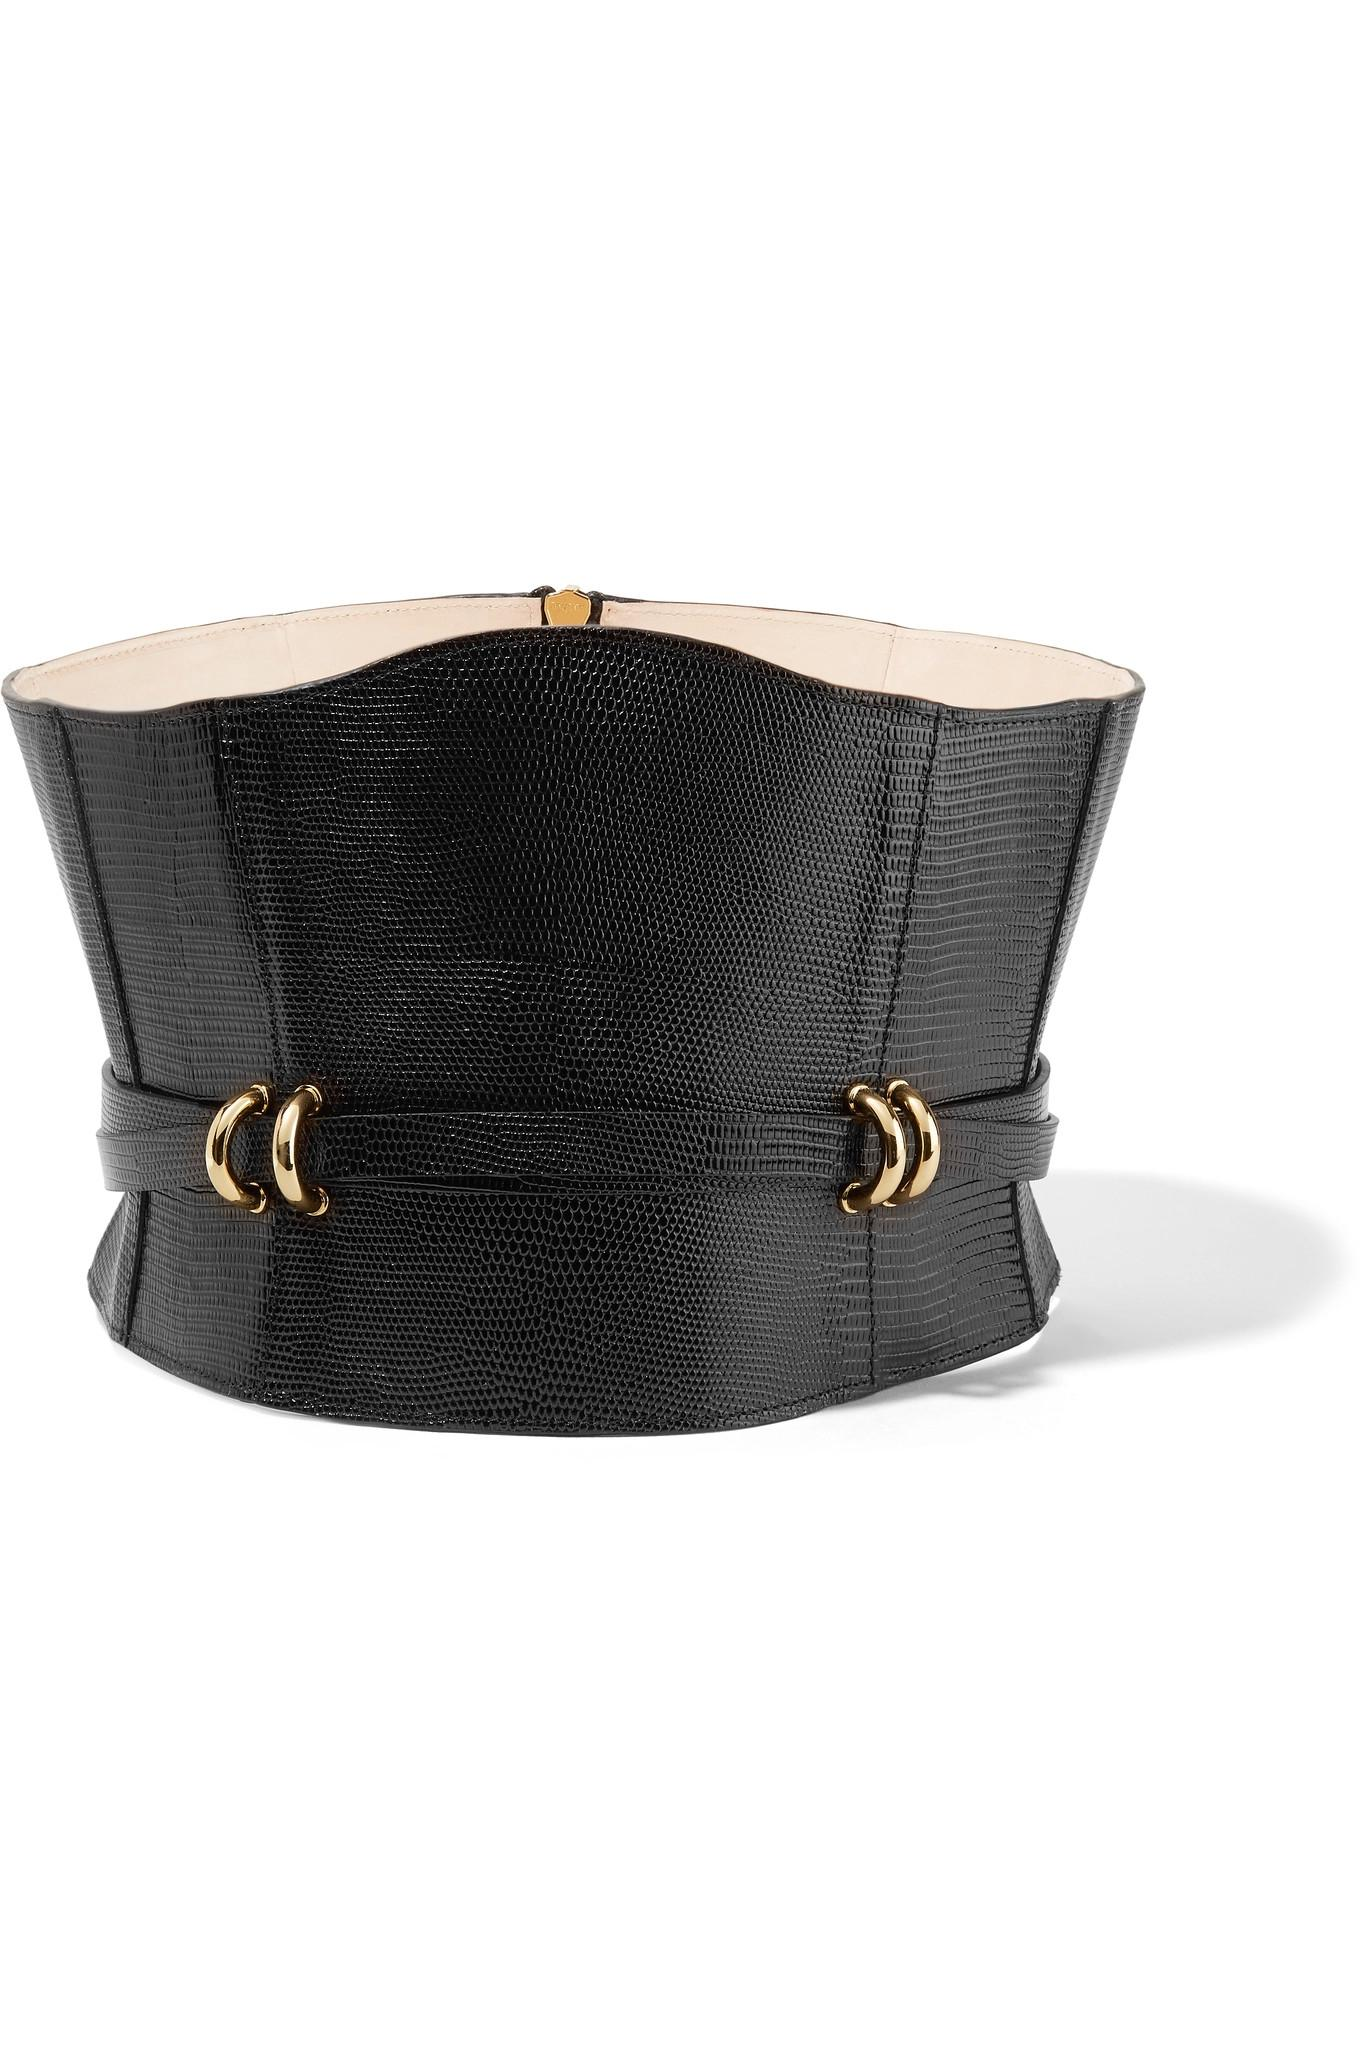 Le Meilleur Balmain Embellished Croc Effect Leather Waist Belt In Ce Mois Ci